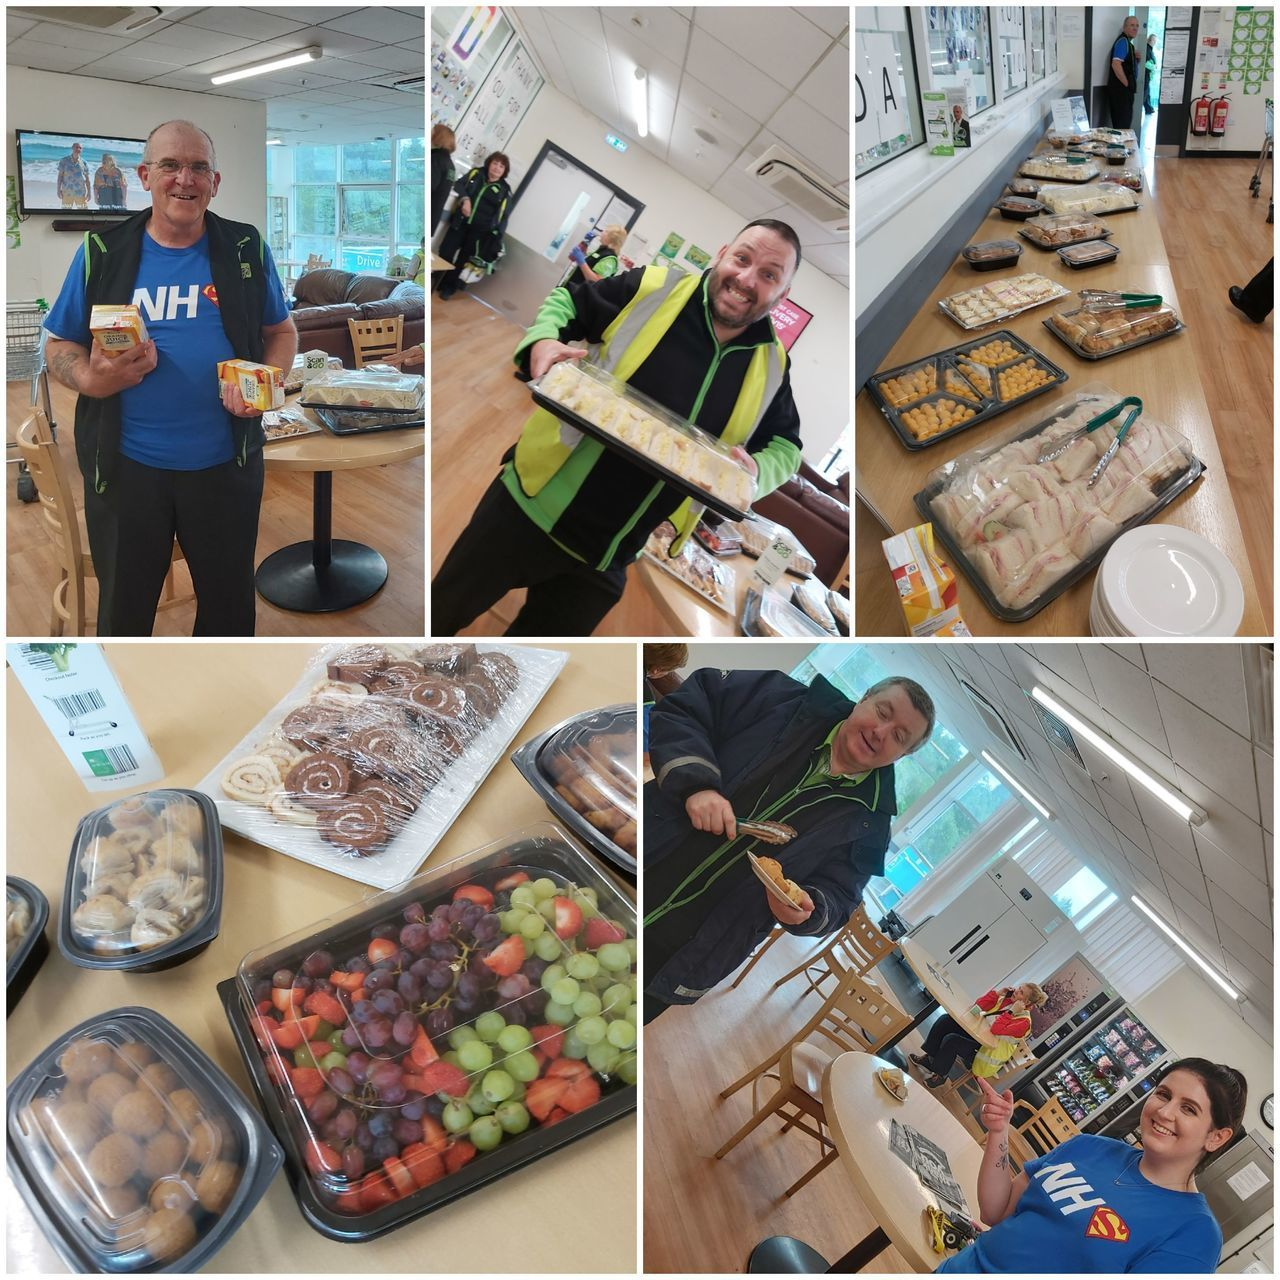 Thank you to our colleagues | Asda Donnington Wood